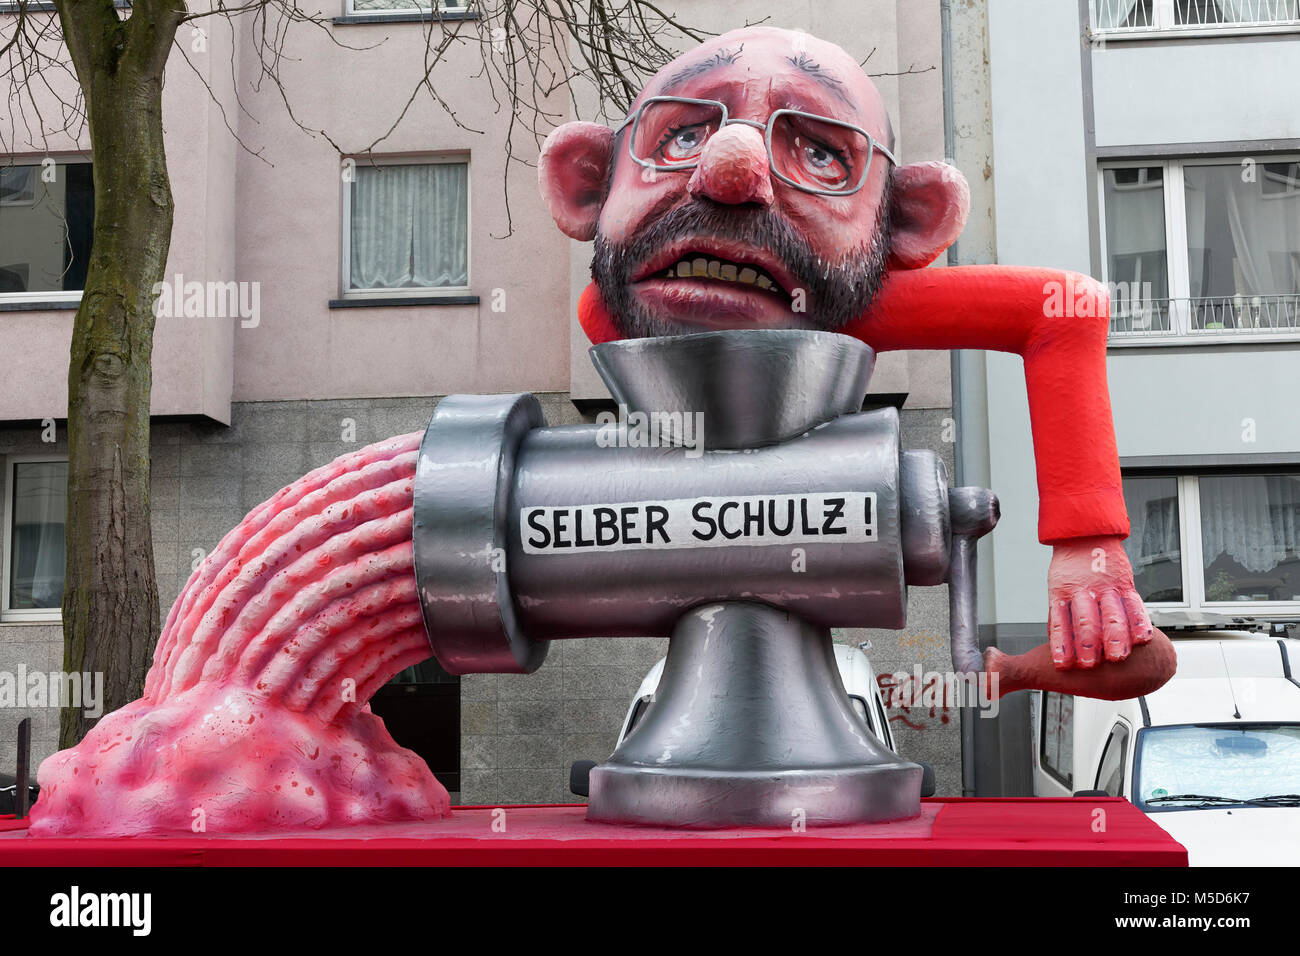 SPD former party leader Martin Schulz turns himself through the meat grinder, political cartoon, motto caravan during - Stock Image